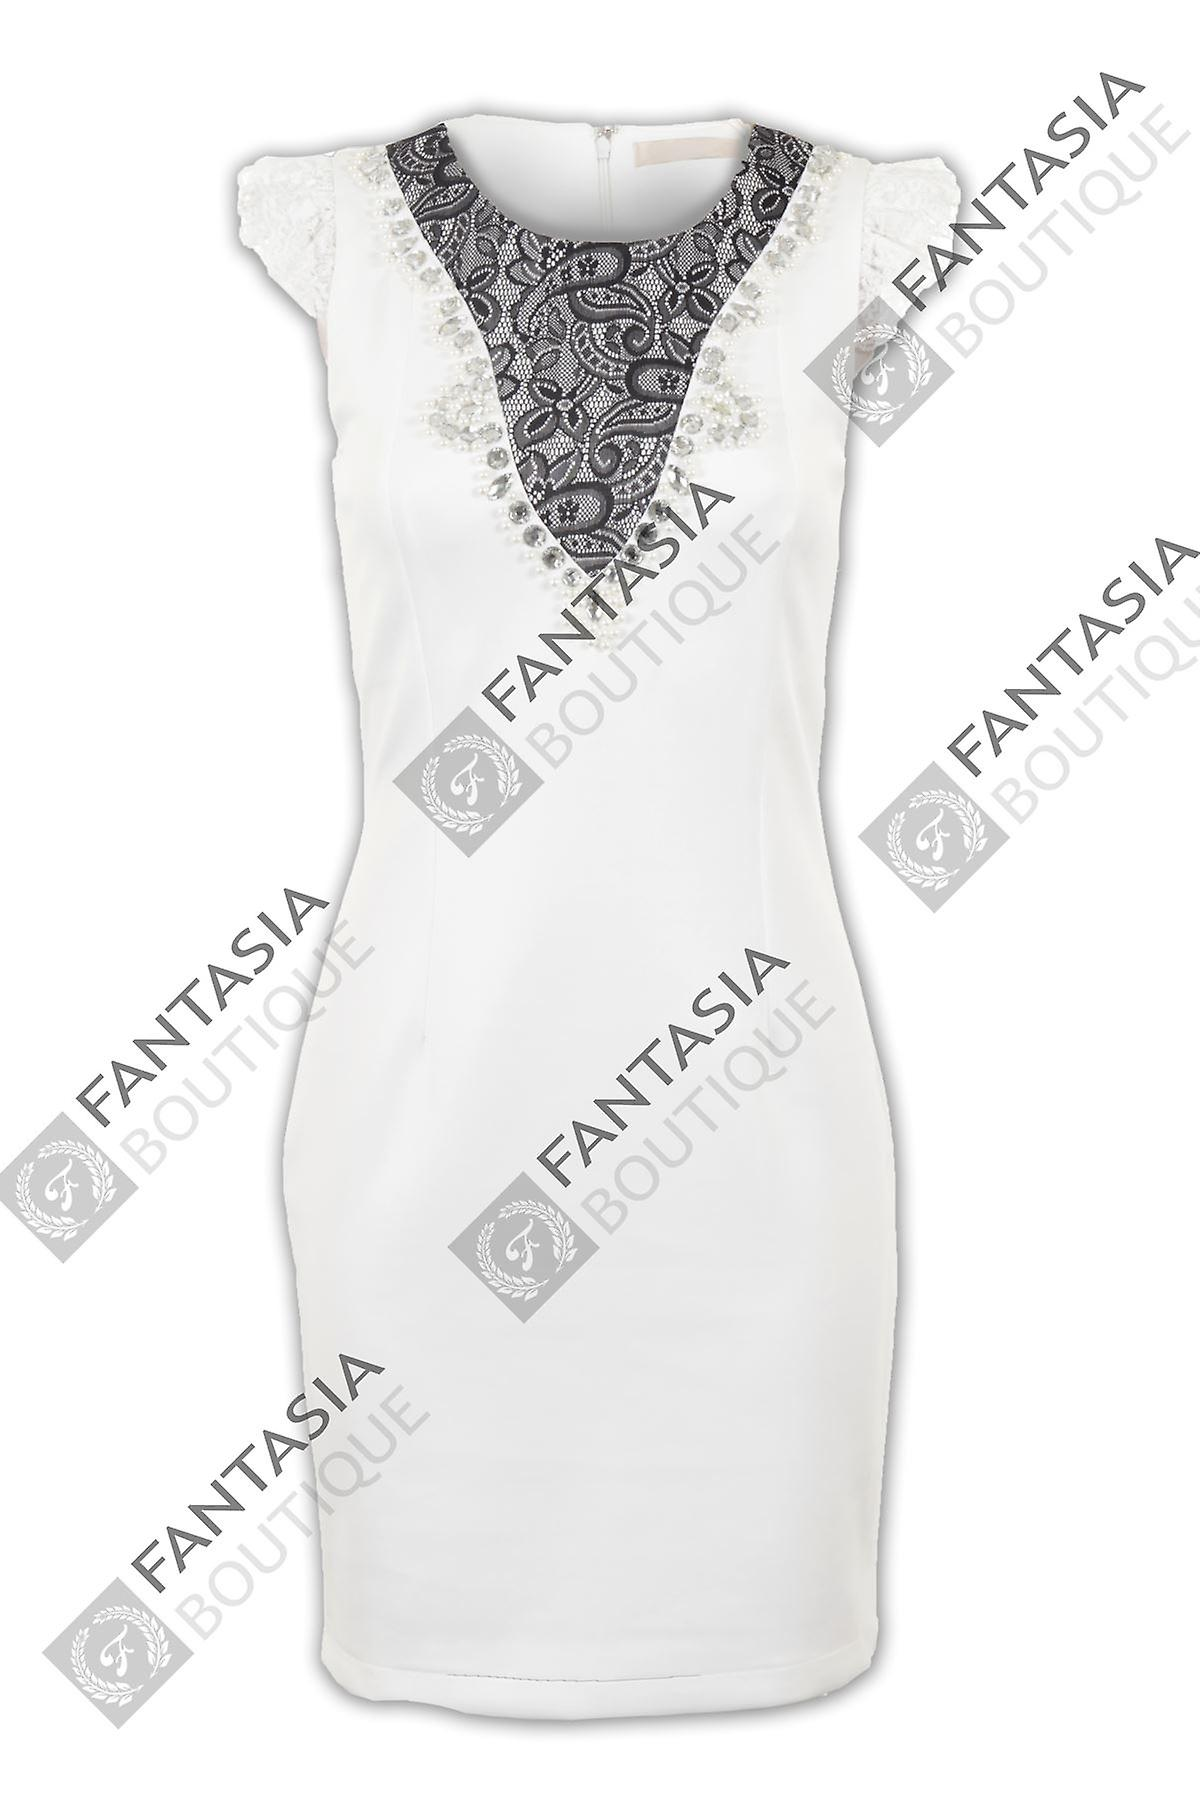 Ladies Cap Sleeve Lace Diamante Pearl Slim Stretch Bodycon Women's Short Dress